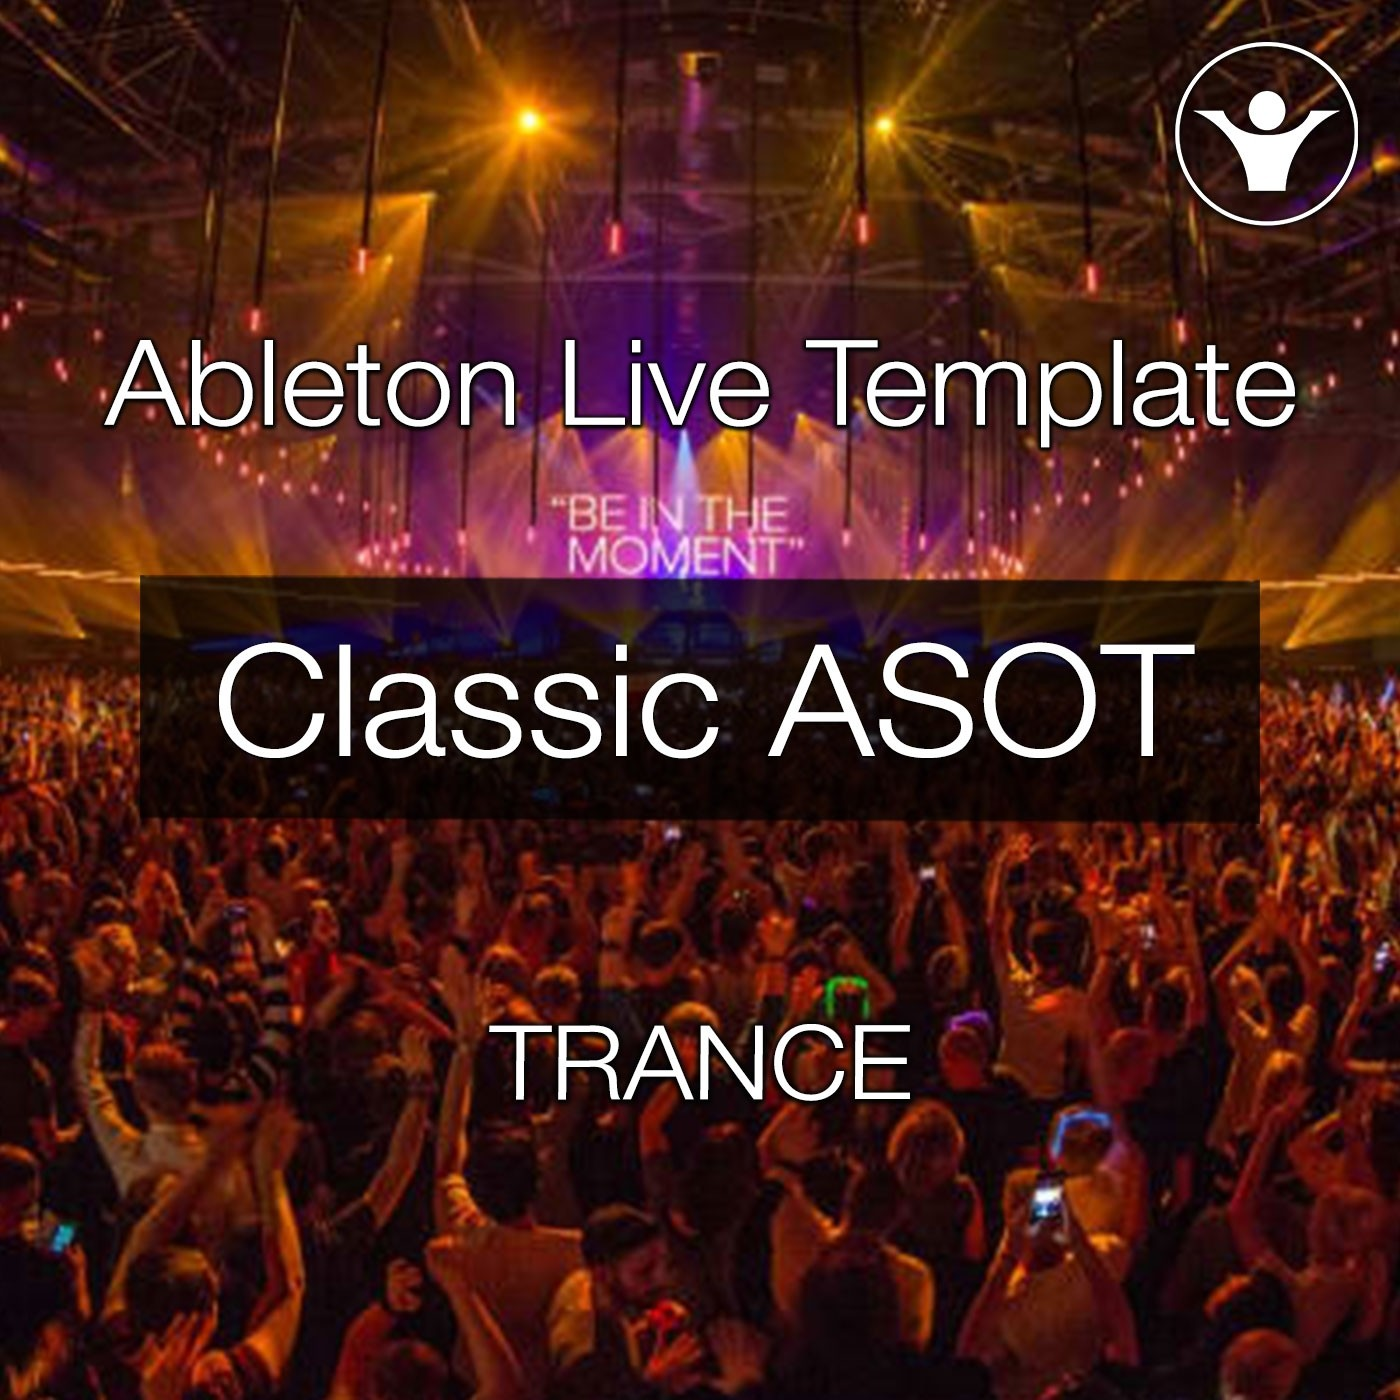 Ableton Template - Classic ASOT Trance